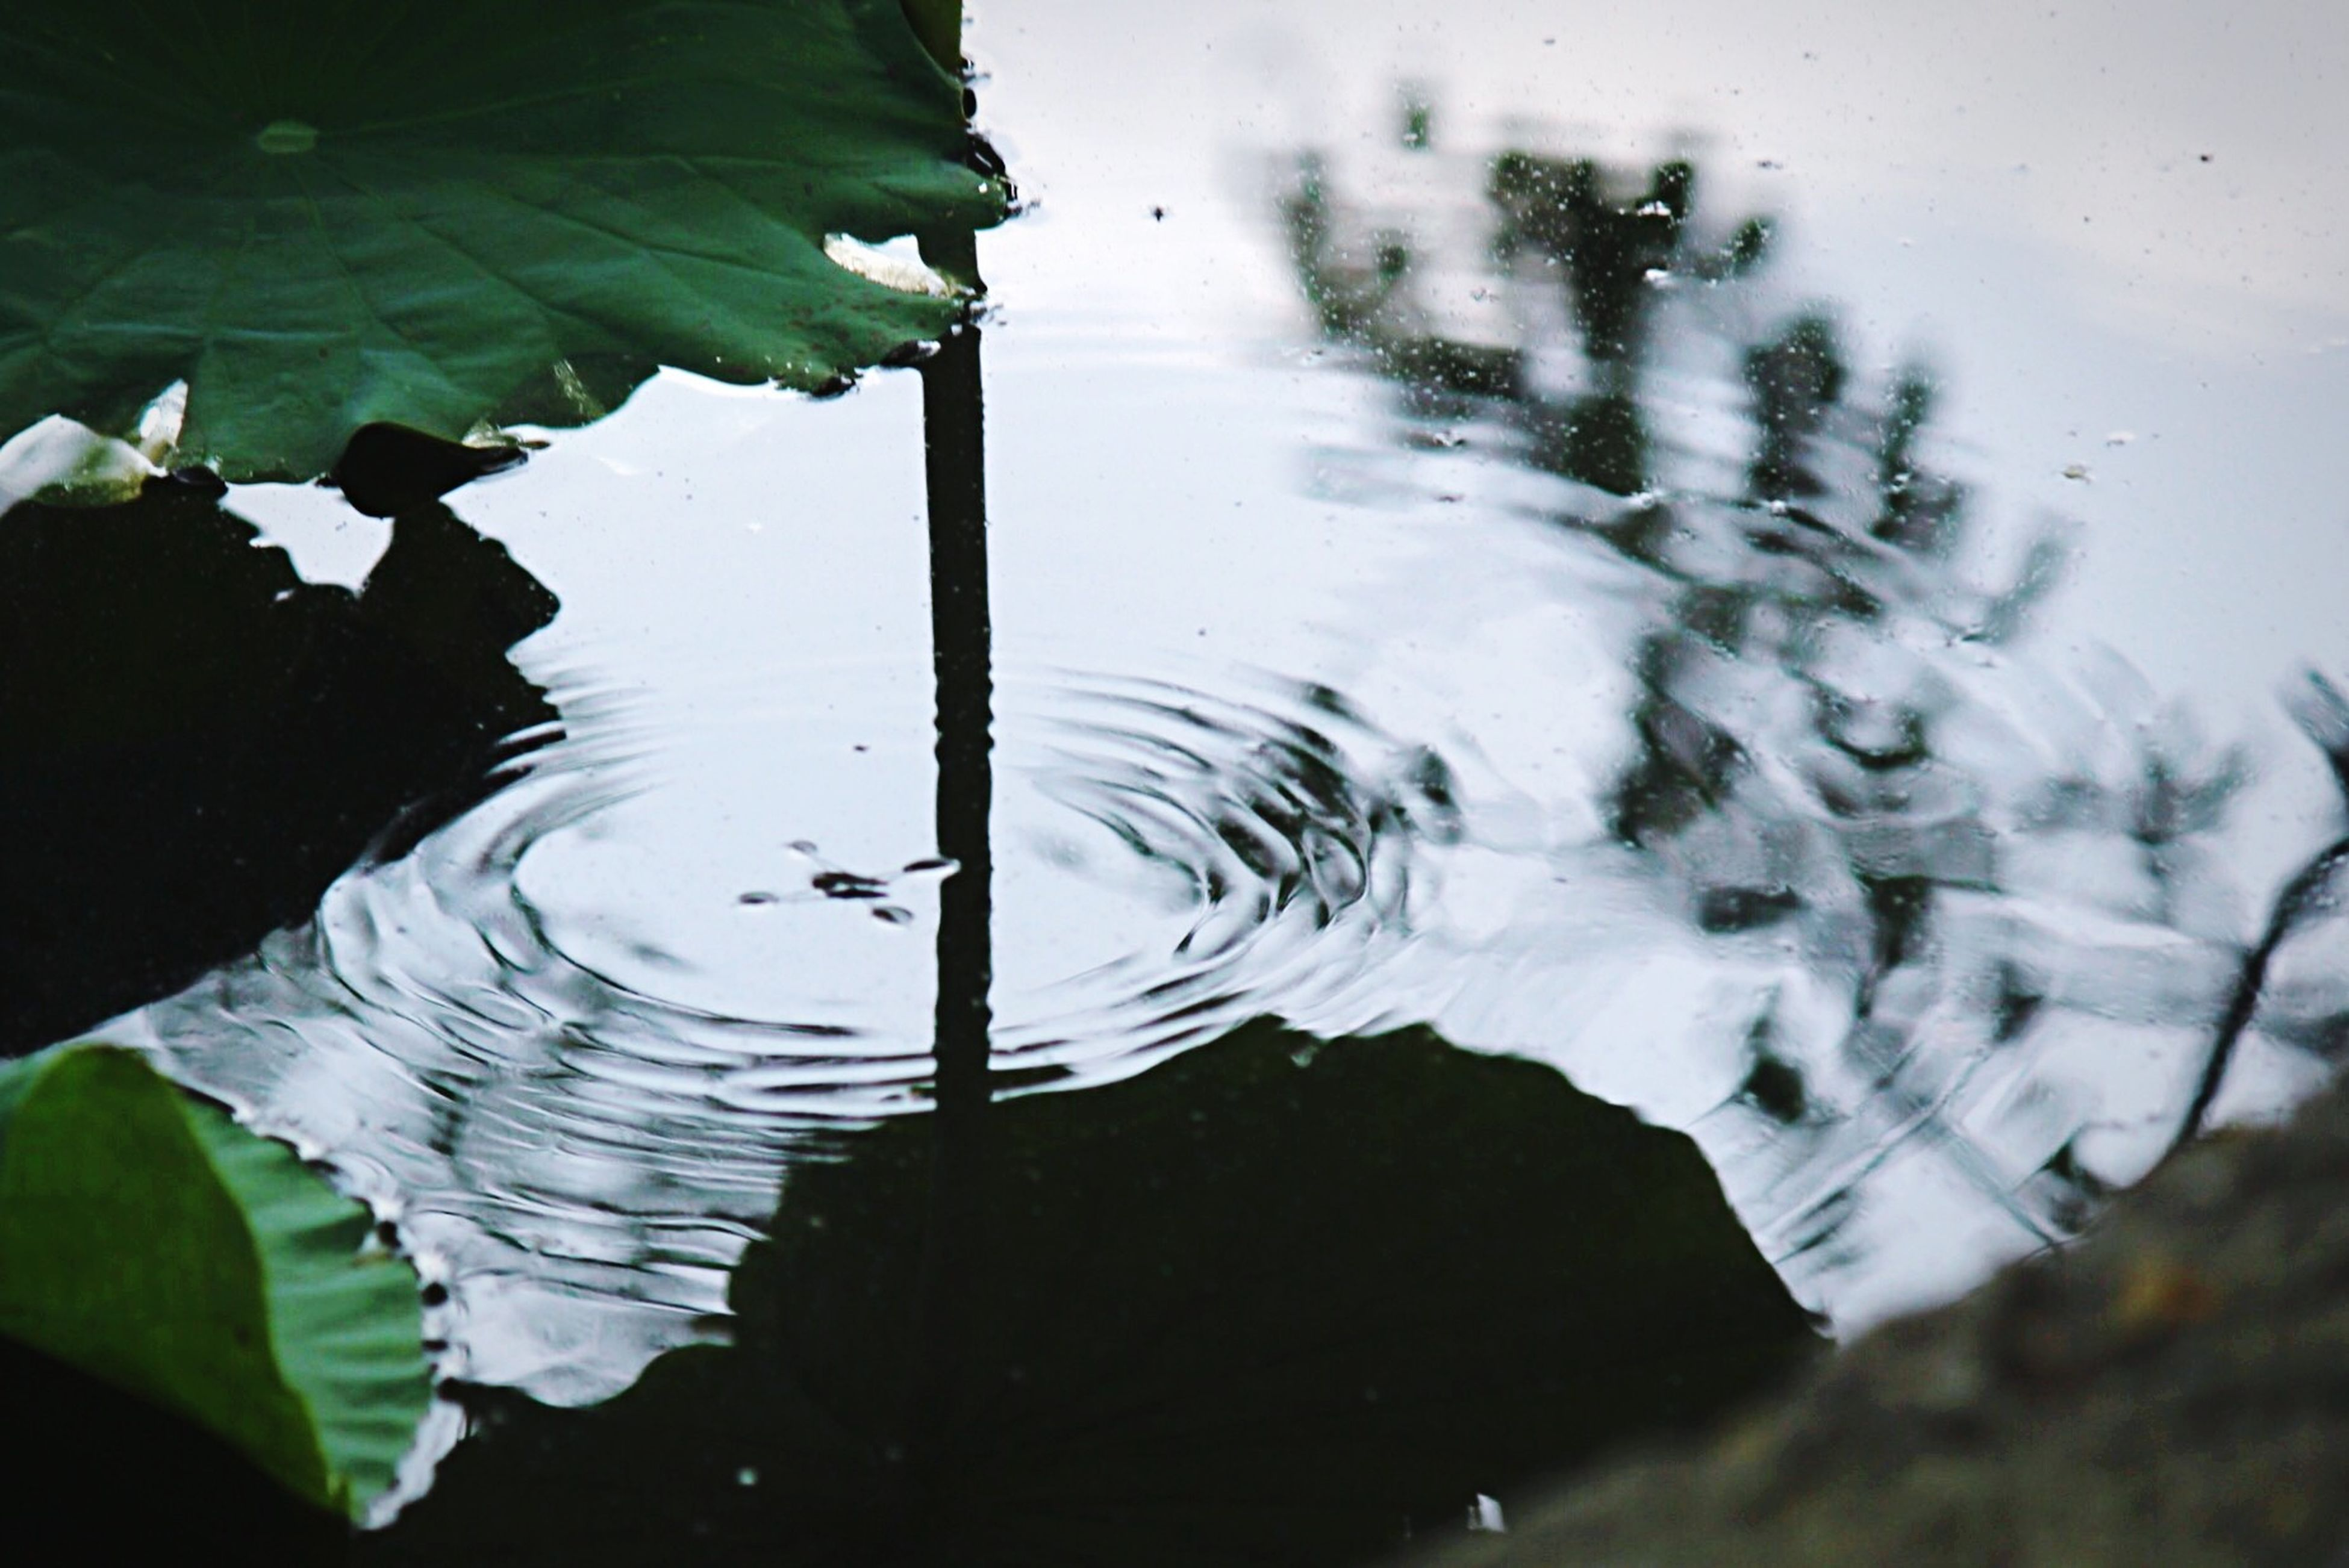 water, leaf, reflection, close-up, nature, wet, drop, plant, lake, focus on foreground, growth, beauty in nature, tranquility, rain, day, no people, outdoors, pond, fragility, transparent